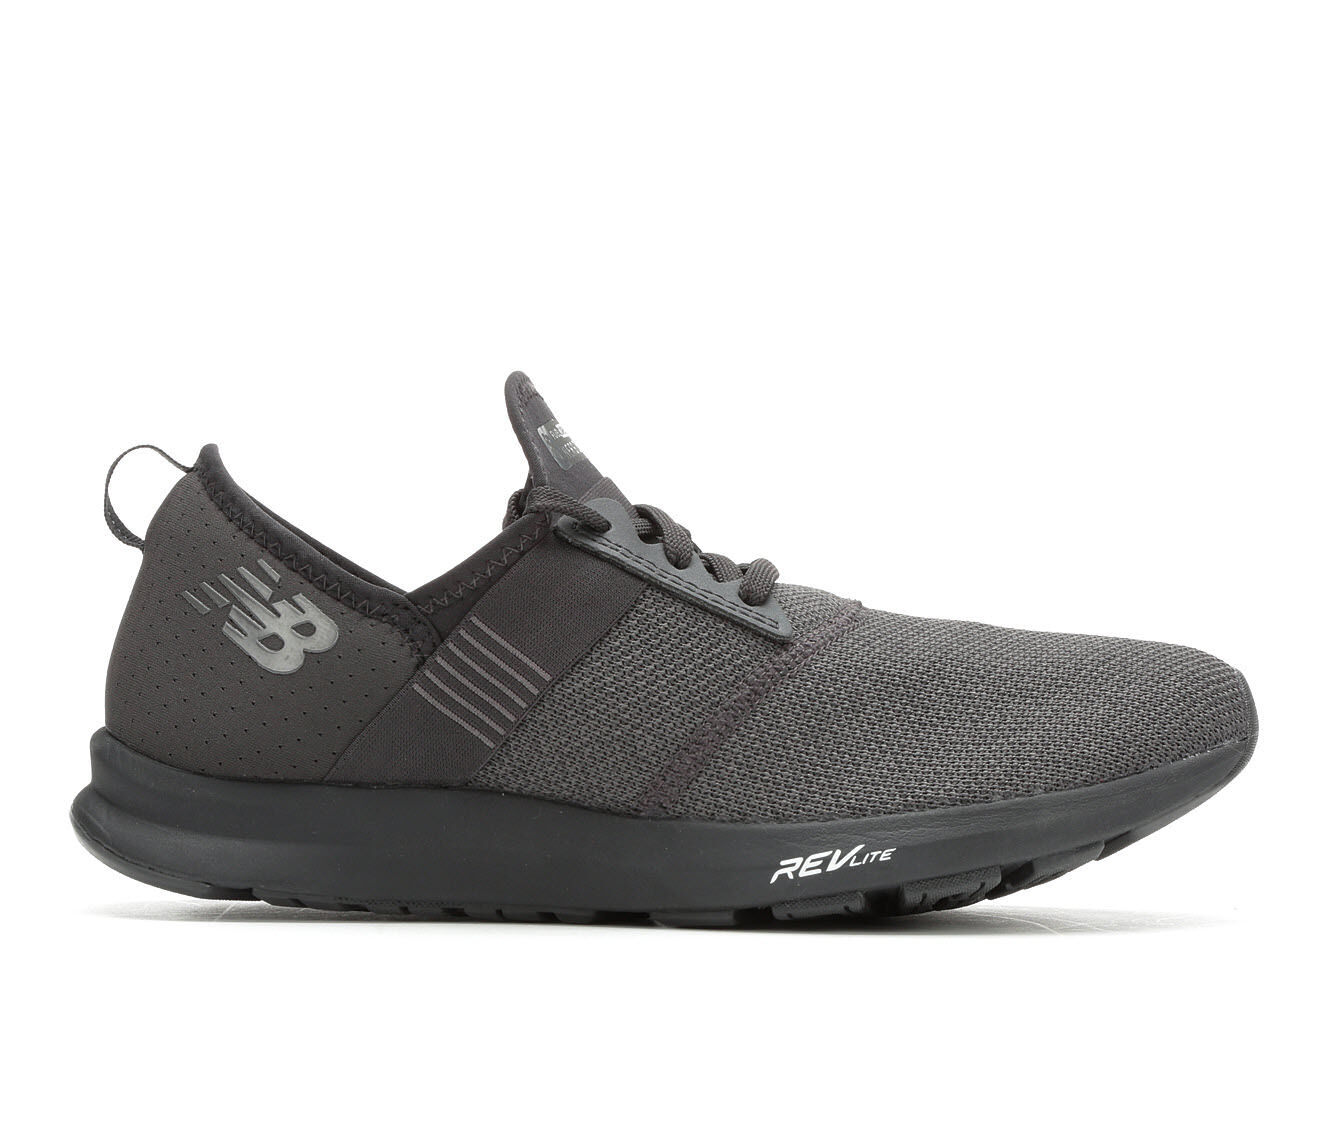 Women's New Balance FuelCore Nergize Sneakers Black/Charcoal